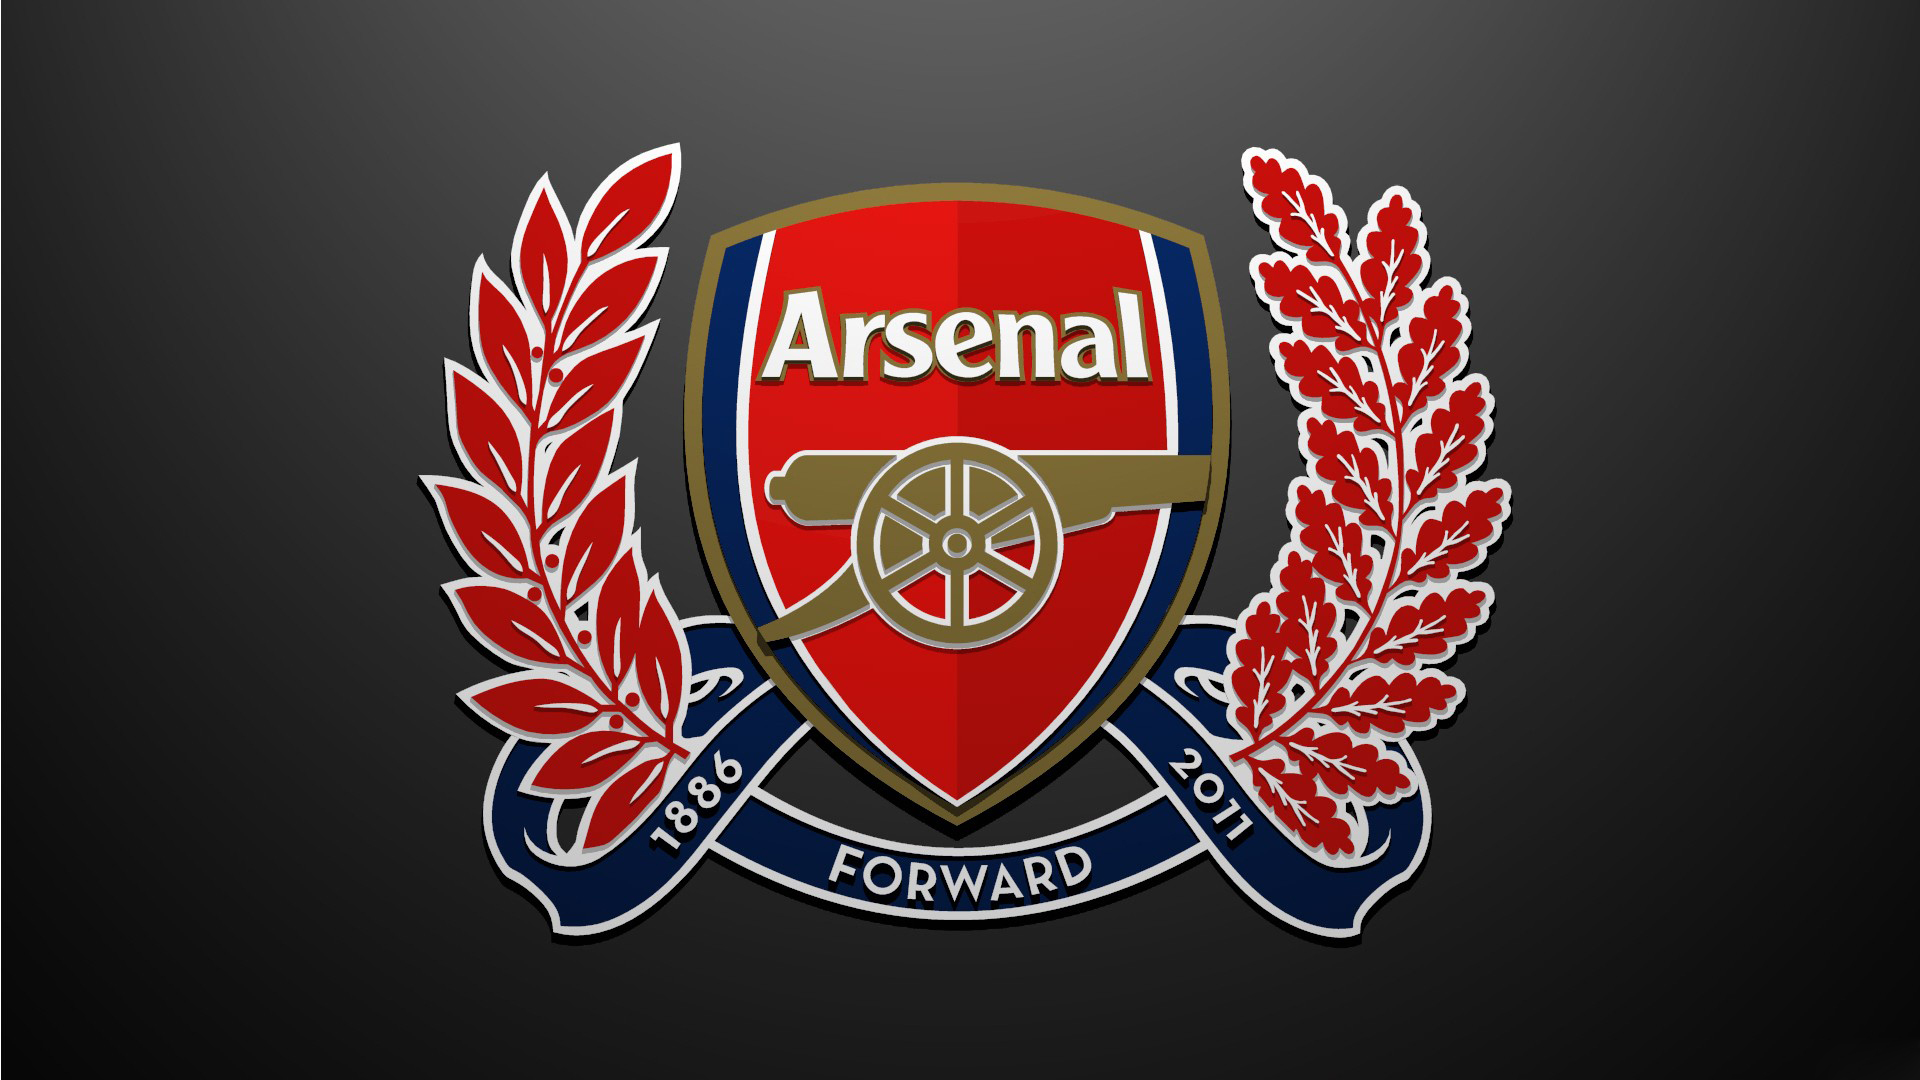 wallpaper.wiki-Arsenal-wallpaper-widescreen-logo-PIC-WPE0012181